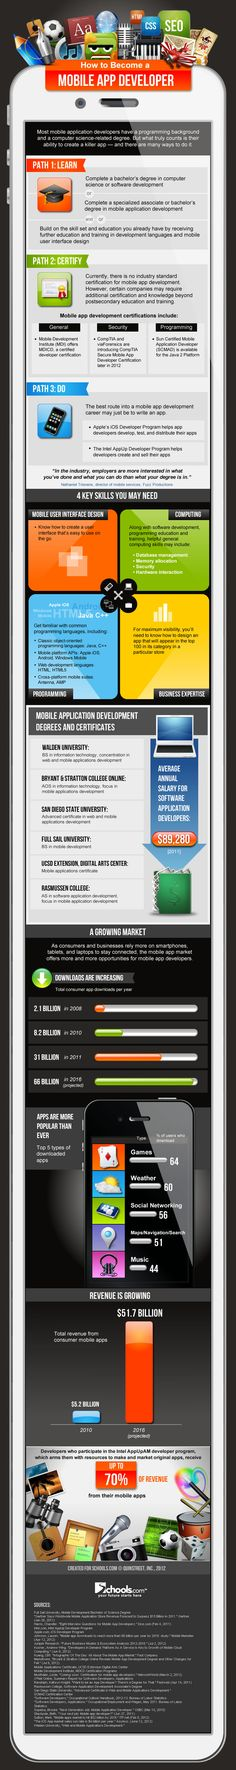 How to become a mobile app developer [infographic] - Holy Kaw!